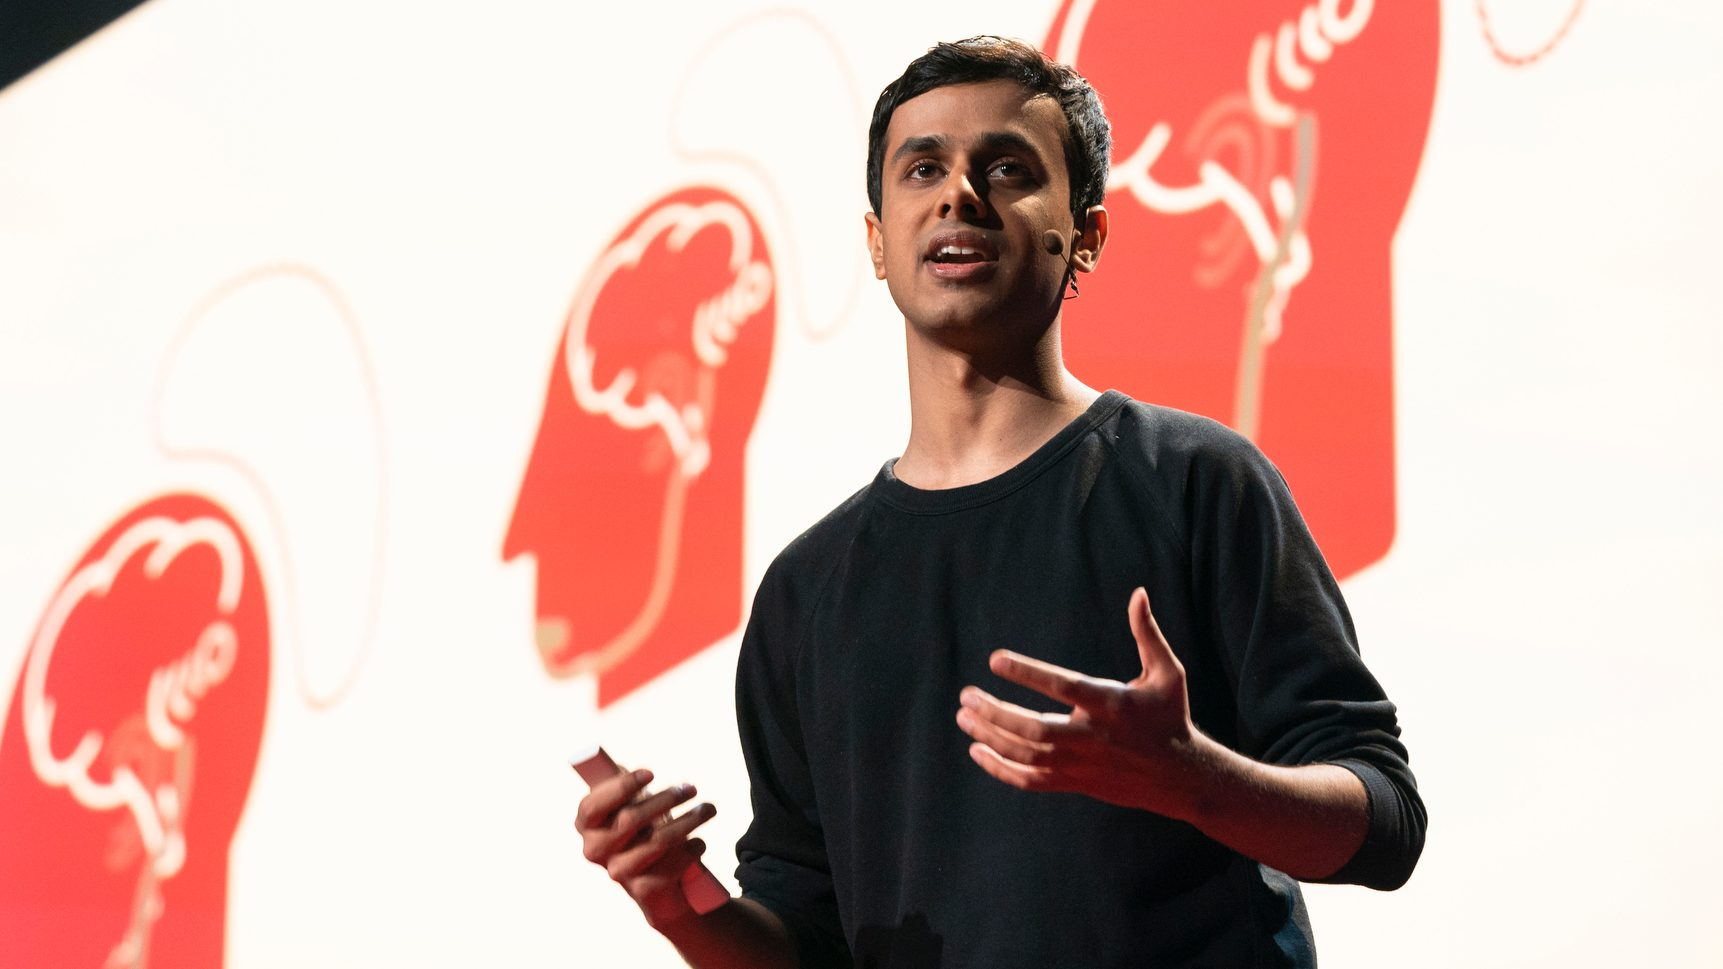 Mit Researchers Offer Explanation For >> Mit S Arnav Kapur Performs A Live Demo Of Alterego At Ted